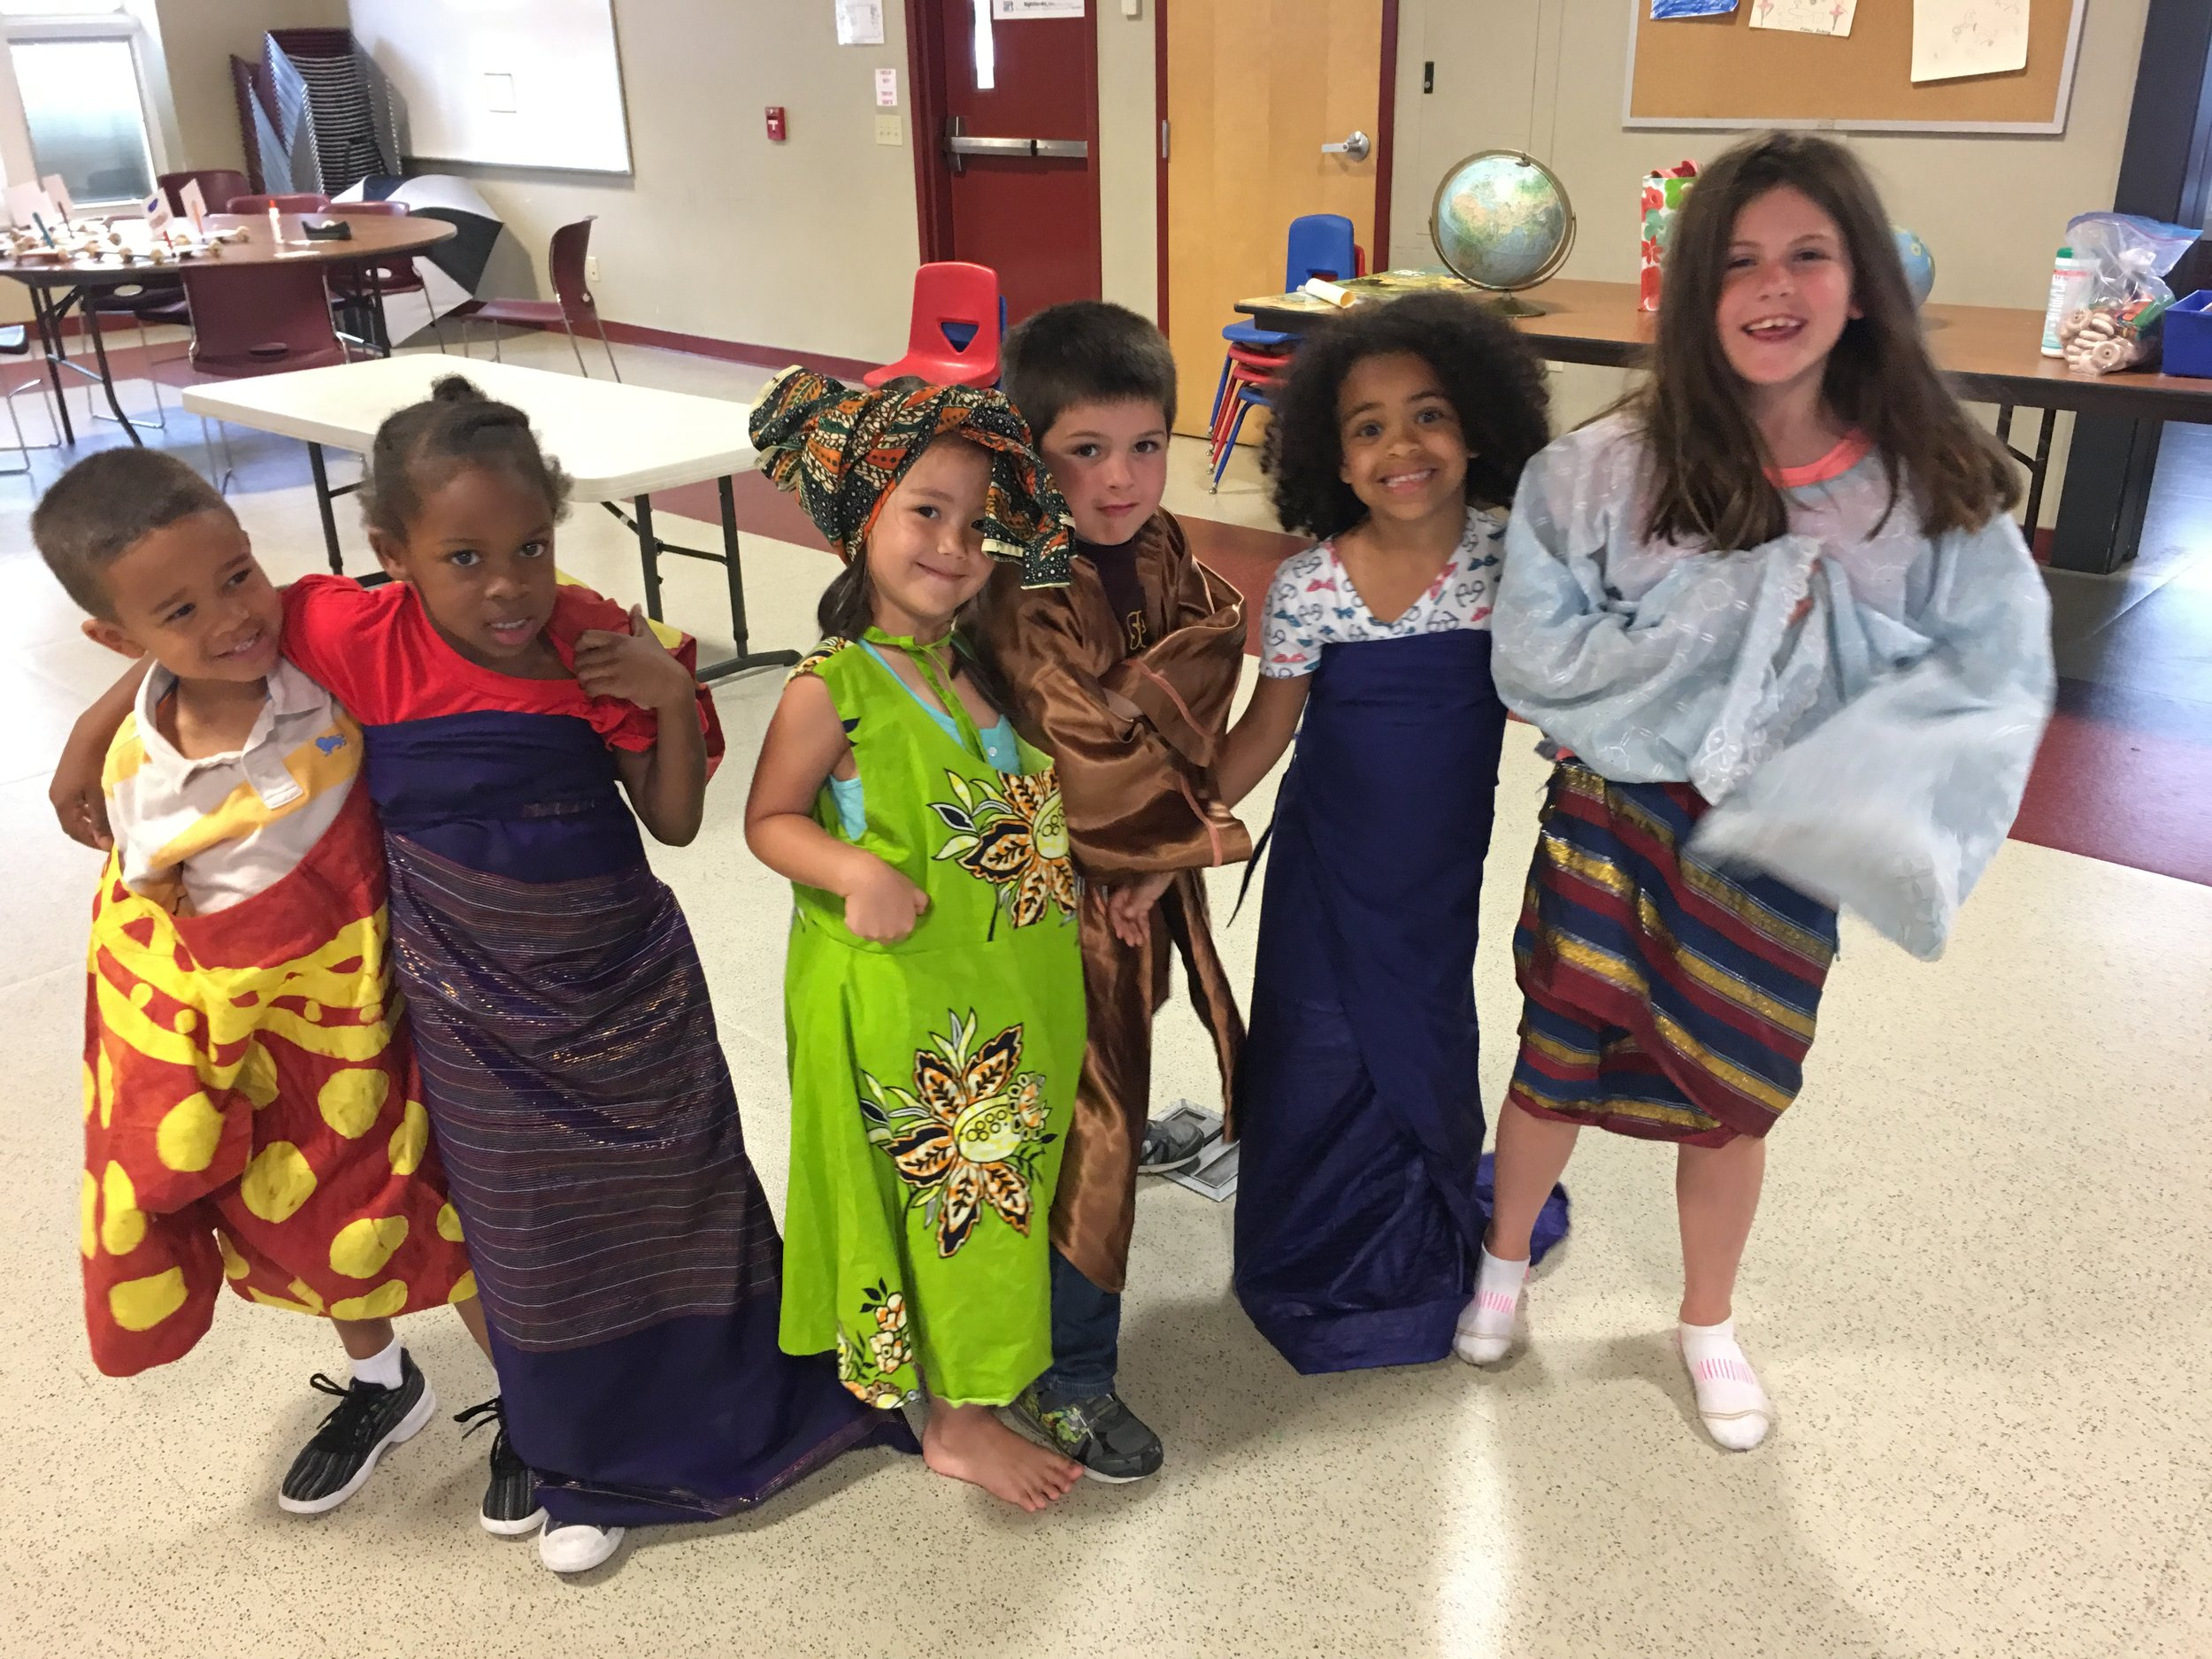 Weekly Themes - Each week campers will explore stories and songs, create artwork, and make and bake foods from countries from around the world. Past cultures of focus have been East Africa, China, Central America, and India.